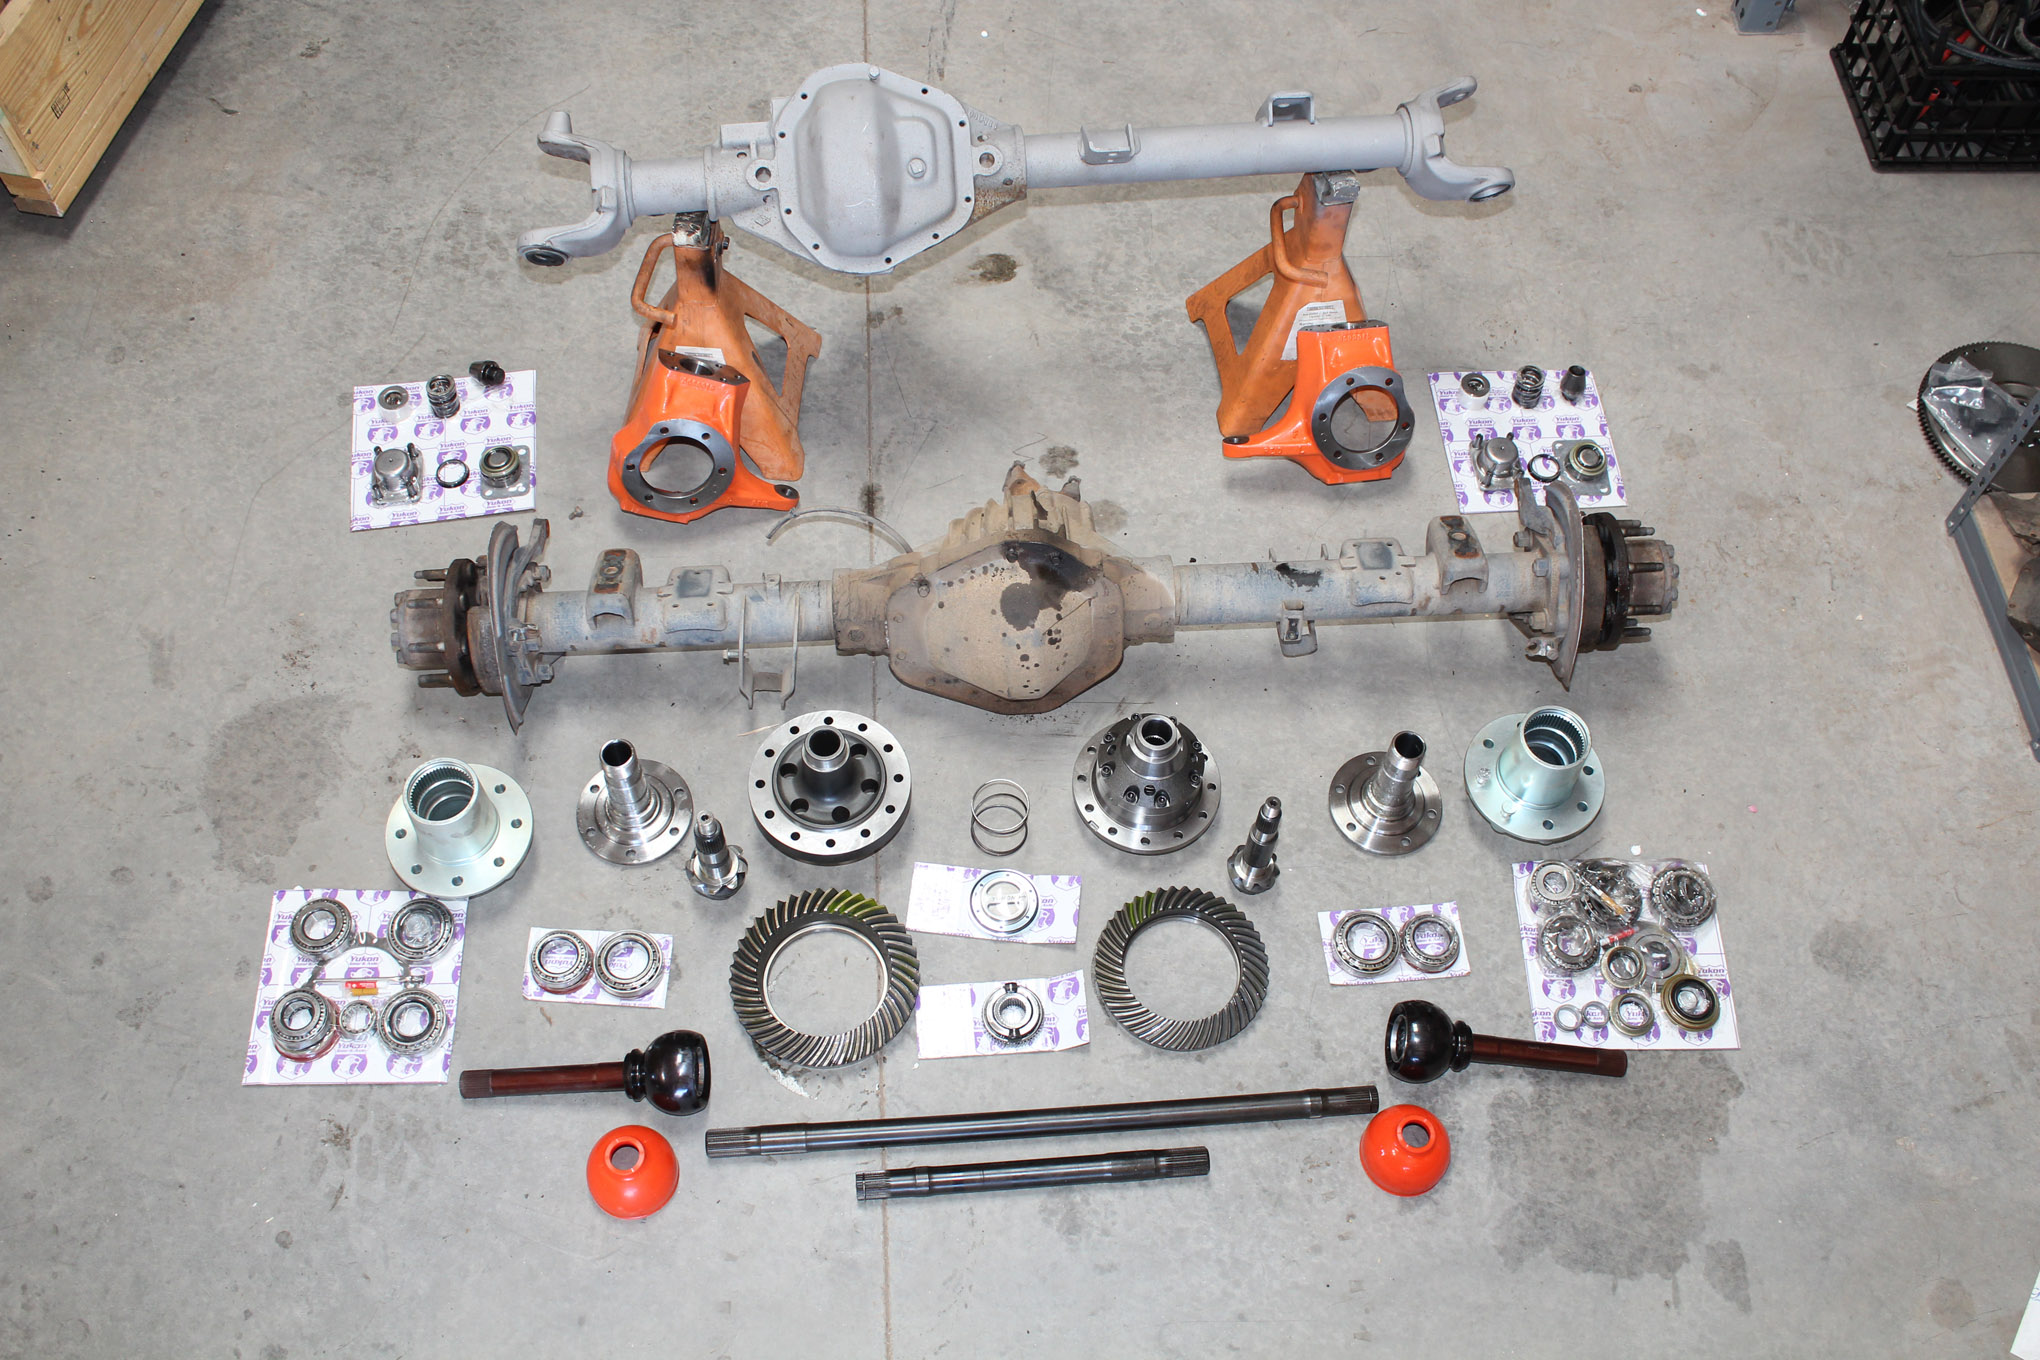 """Other key pieces of any 4x4 include the axles, and with 38s or 39s in the plans, only 1-tons would offer anything approaching reliability. Some horse trading netted a bare Chevy Dana 60 front housing, which I filled with 4.88s and a Grizzly locker from Yukon, as well as RCV shafts and Reid Racing knuckles. This is all A-team stuff, and I'll be surprised if I ever have any issues out of the frontend. The details on this and the rear axle build are also on the Four Wheeler Network: <a href=""""http://www.fourwheeler.com/how-to/transmission-drivetrain/1805-bulletproof-one-tons-for-pugsley-the-scout/"""" title="""""""" target=""""_blank"""">bit.ly/2Fnvqxz</a>."""